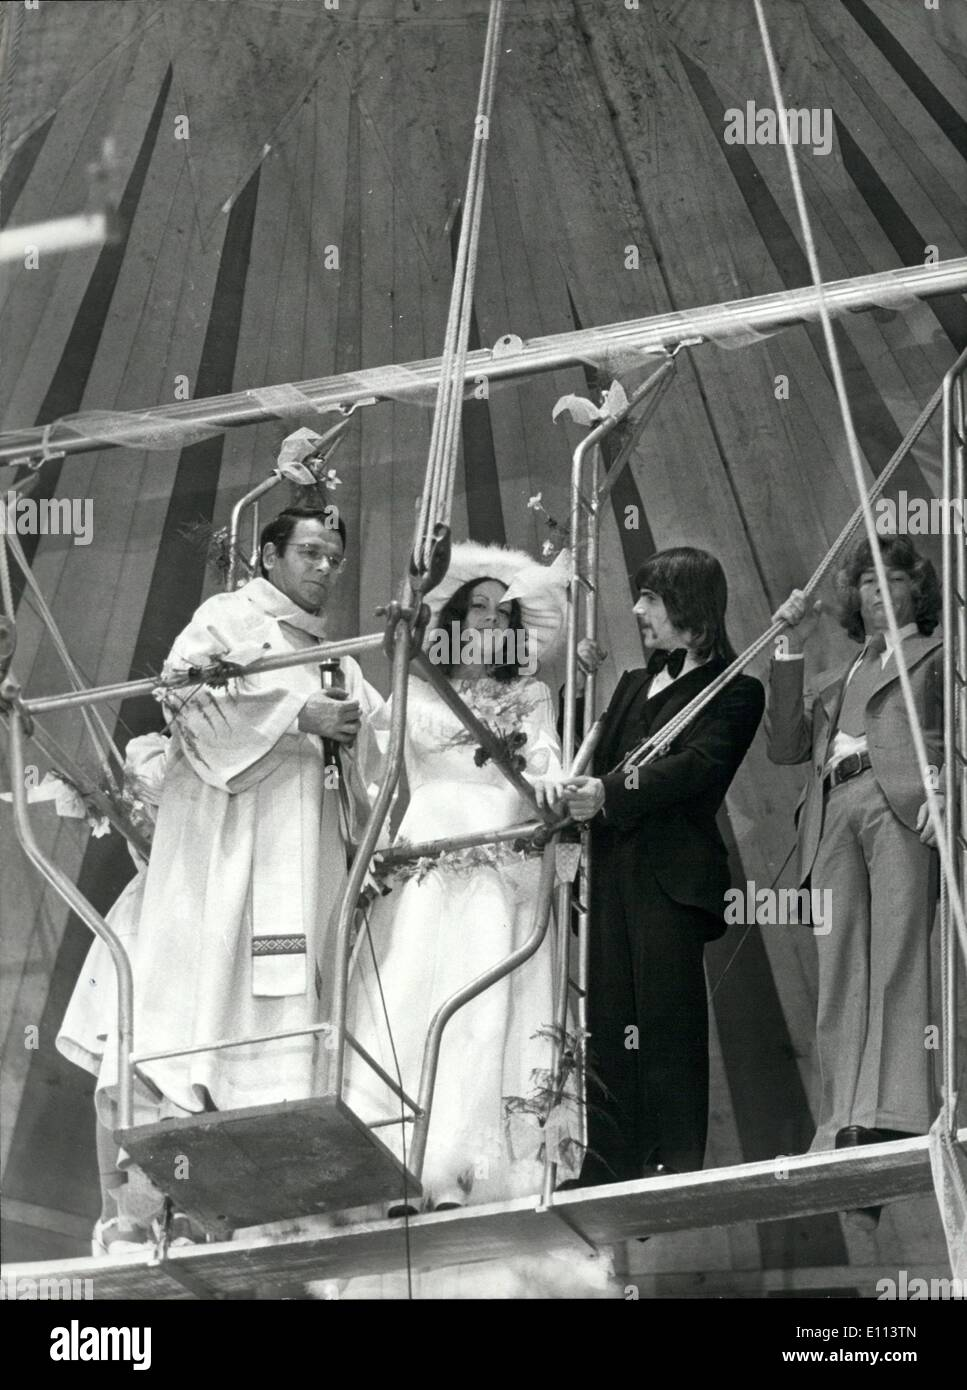 Jul. 07, 1975 - They are in their ''Seventh heaven'' - newly weds trapeze artistes Francis Martin Kora, 24, from the USA and has lovely partner Carole Fiallo, 21, from cape town, s. Africa, The priest is father jean boudeau. They decided on their novel high flying wedding ceremony whilst working with the pinder jean-Richard circus at Nantes. in France. - Stock Image